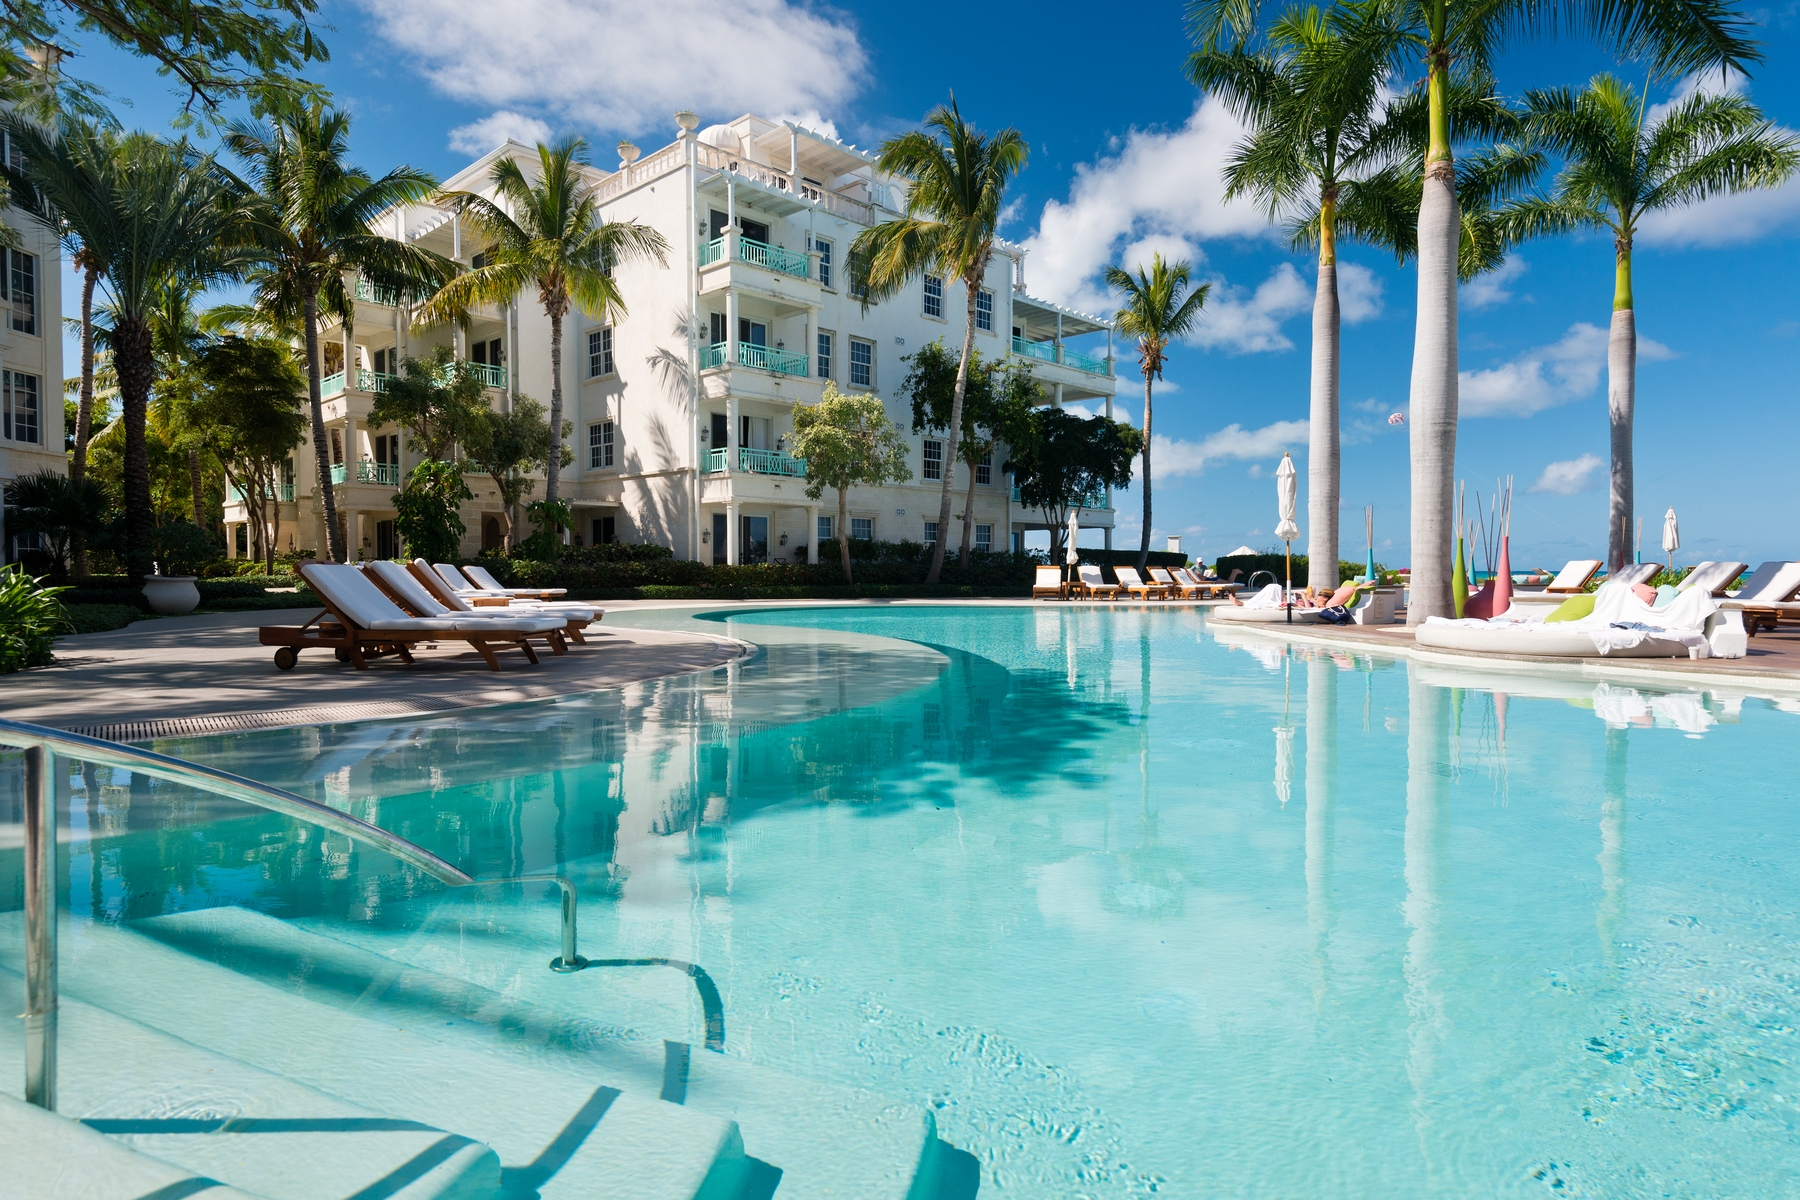 Condominium for Sale at The Regent Palms - Suite 3103/3104 Beachfront Grace Bay, Providenciales TC Turks And Caicos Islands